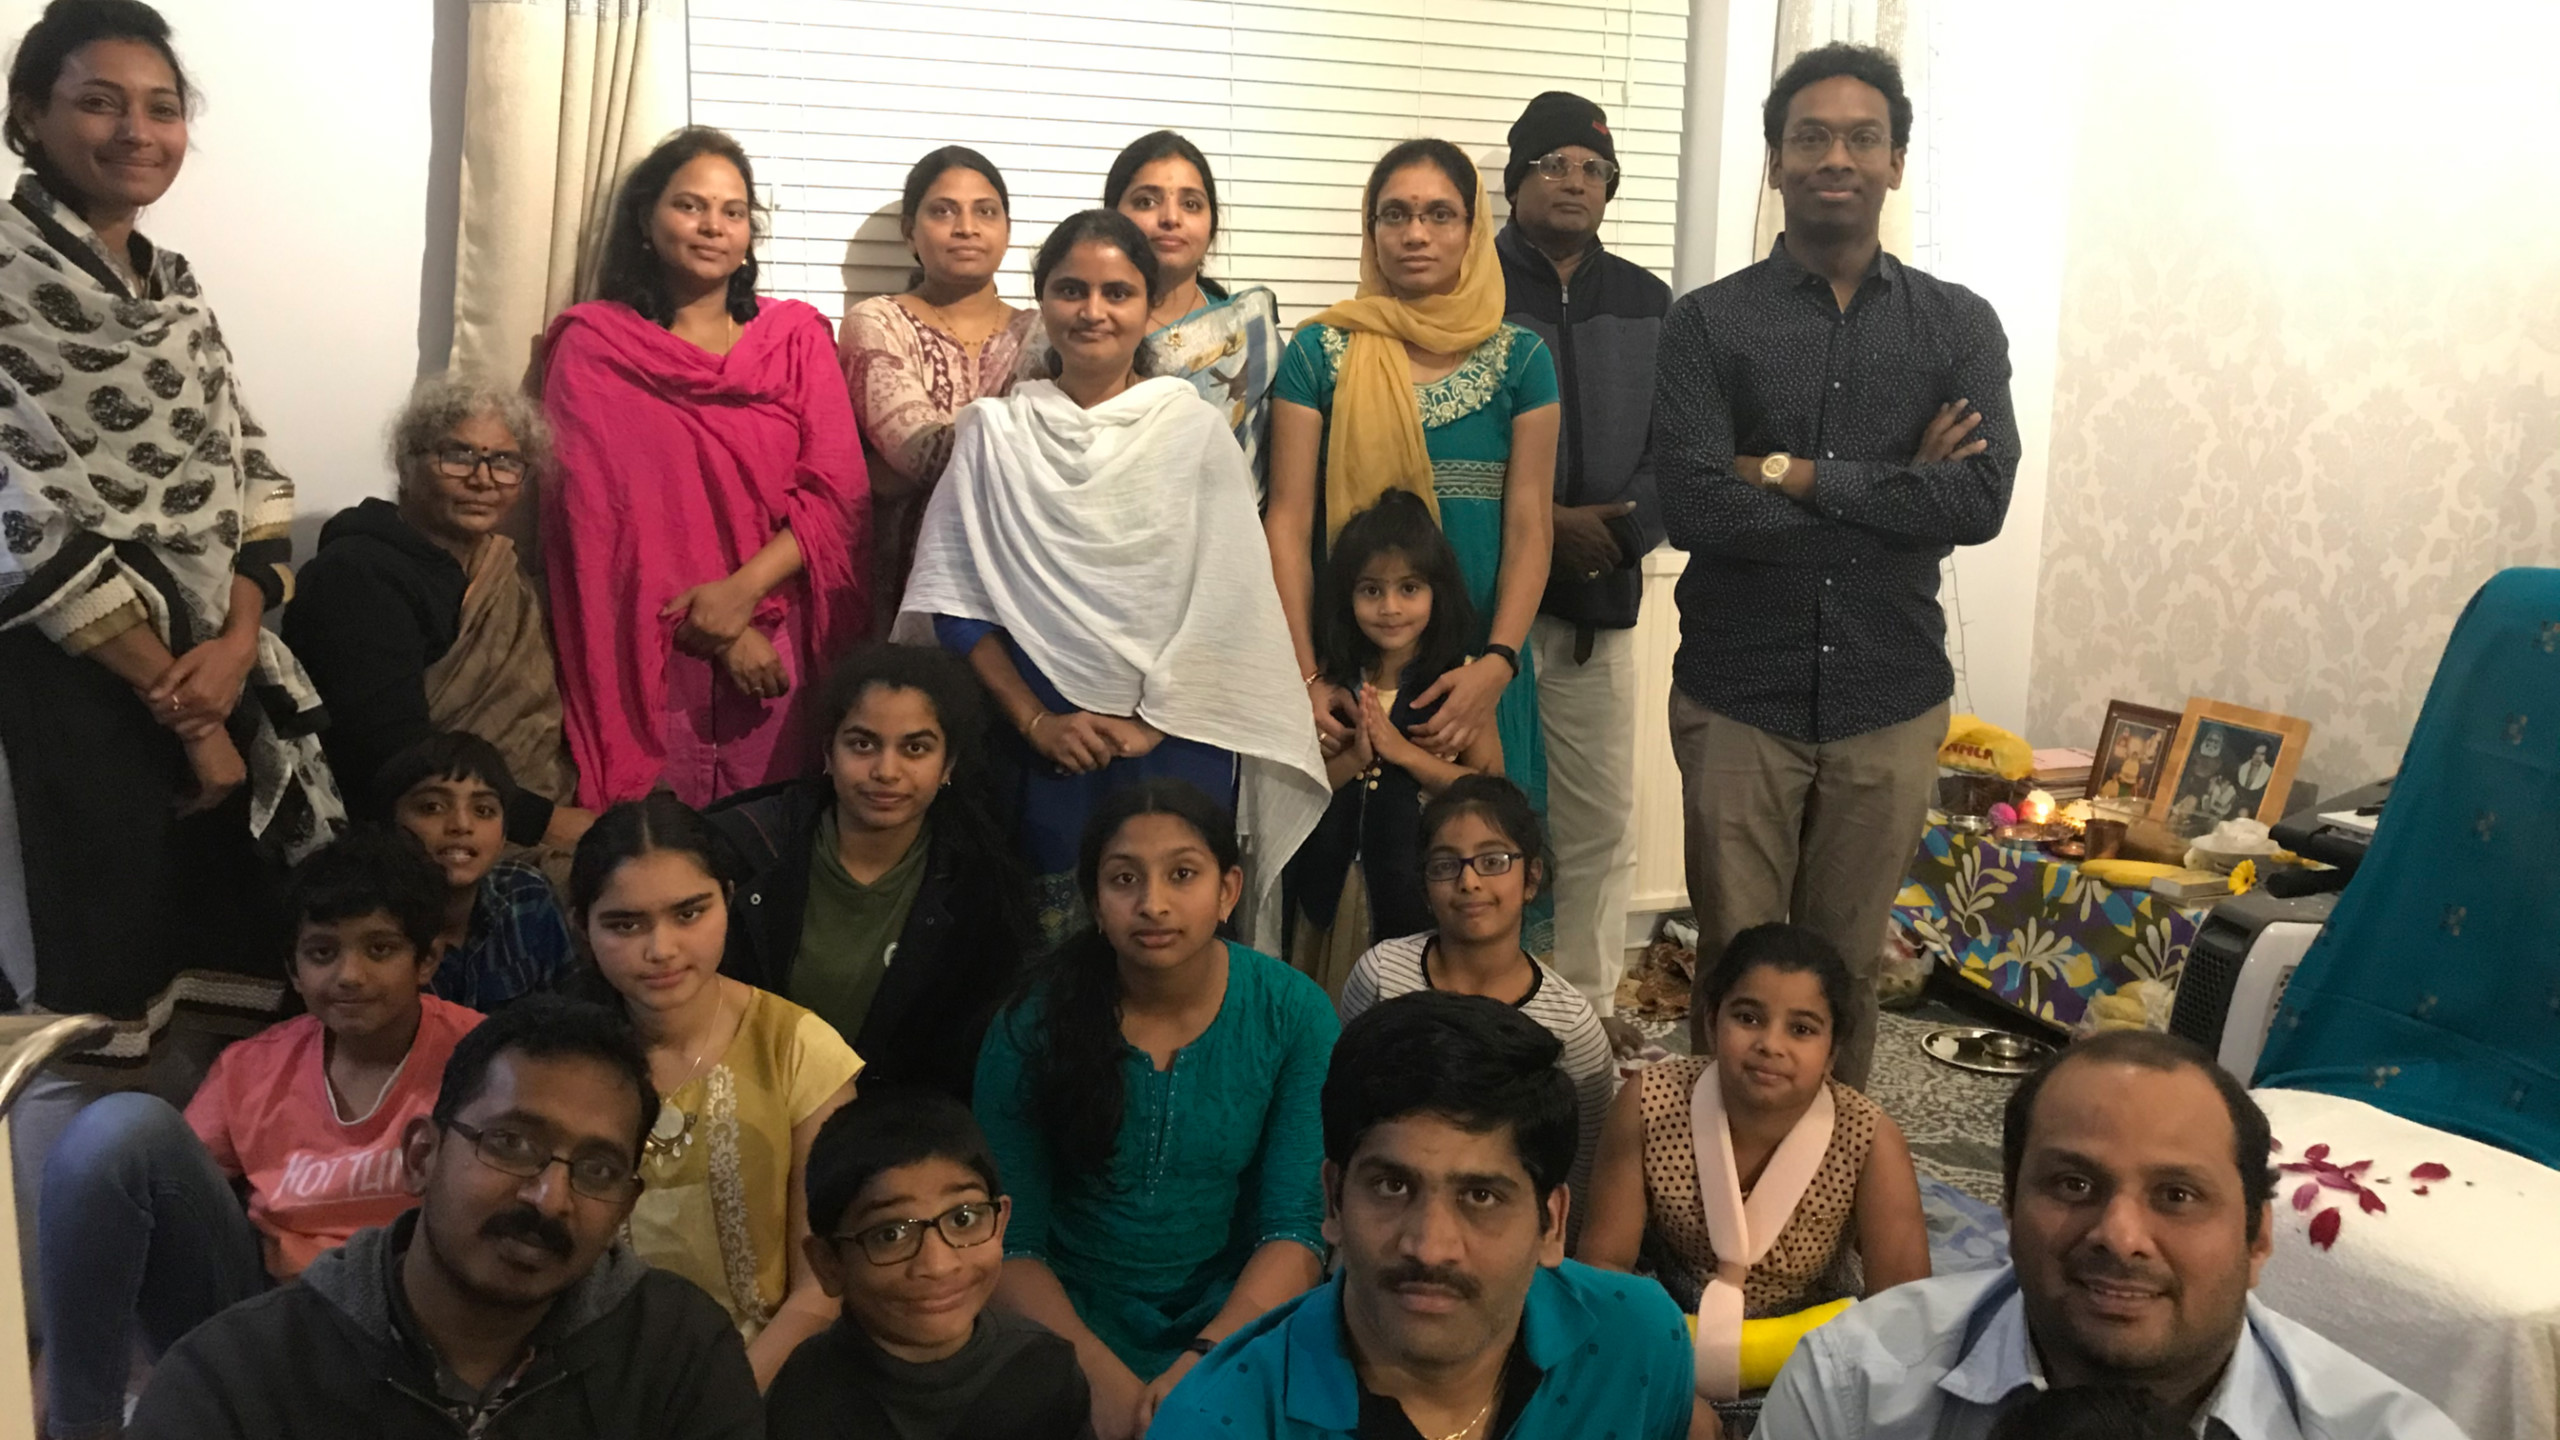 London Aaradhana at Mr.Krishna Kishore Yerra's house on 5th Oct 2019